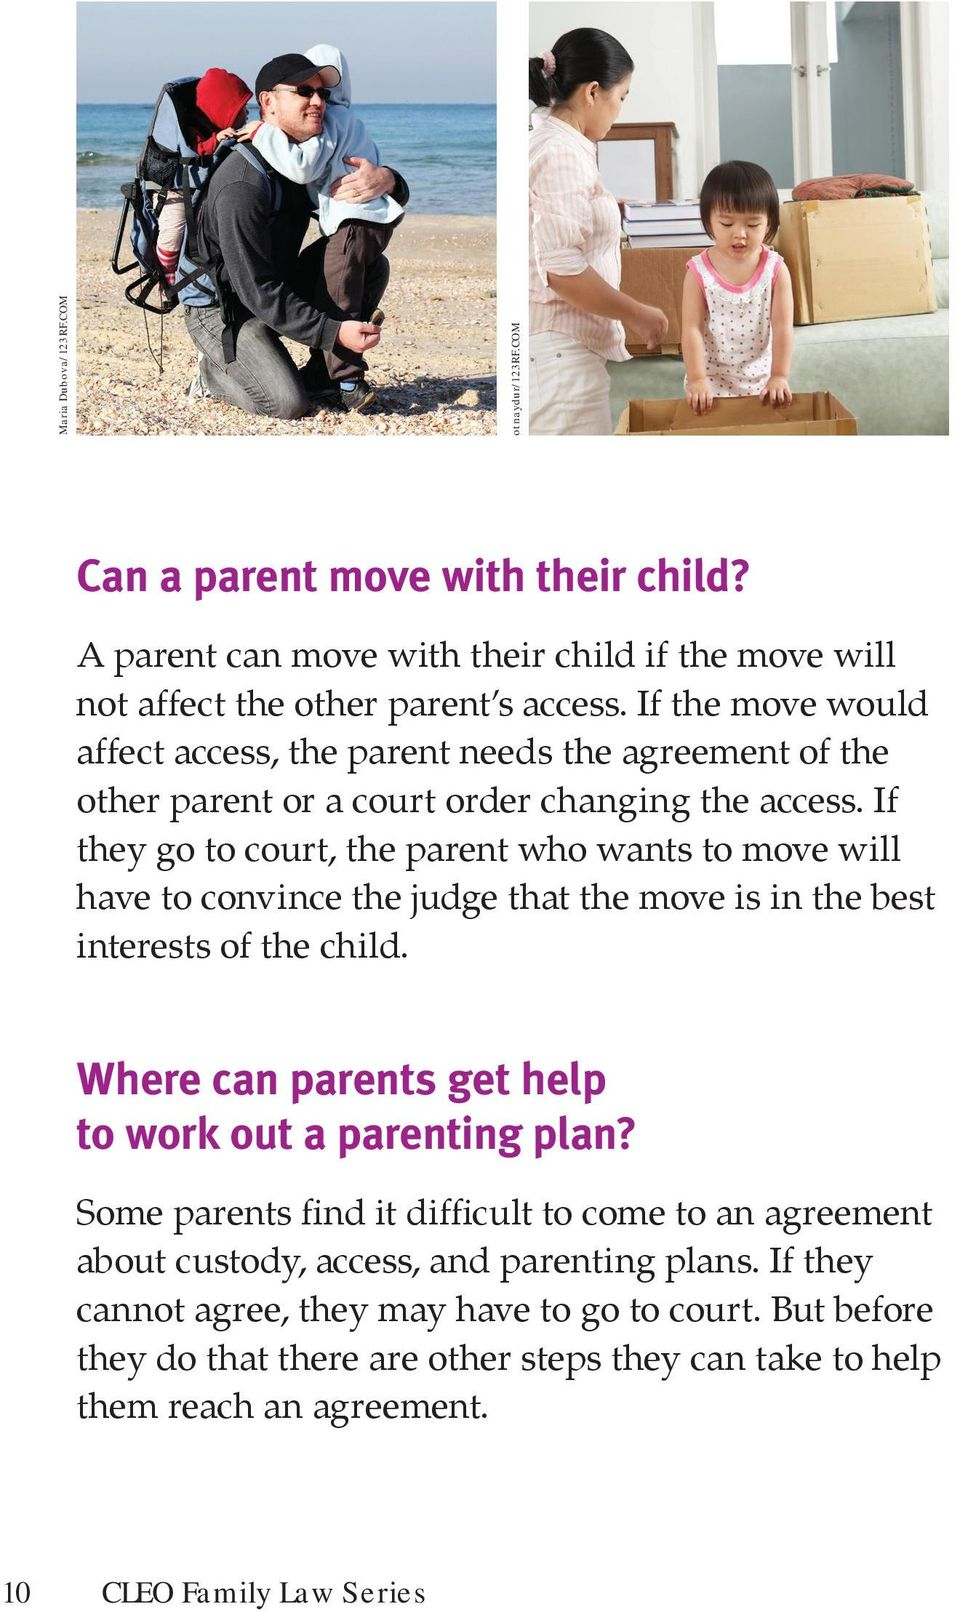 If they go to court, the parent who wants to move will have to convince the judge that the move is in the best interests of the child.